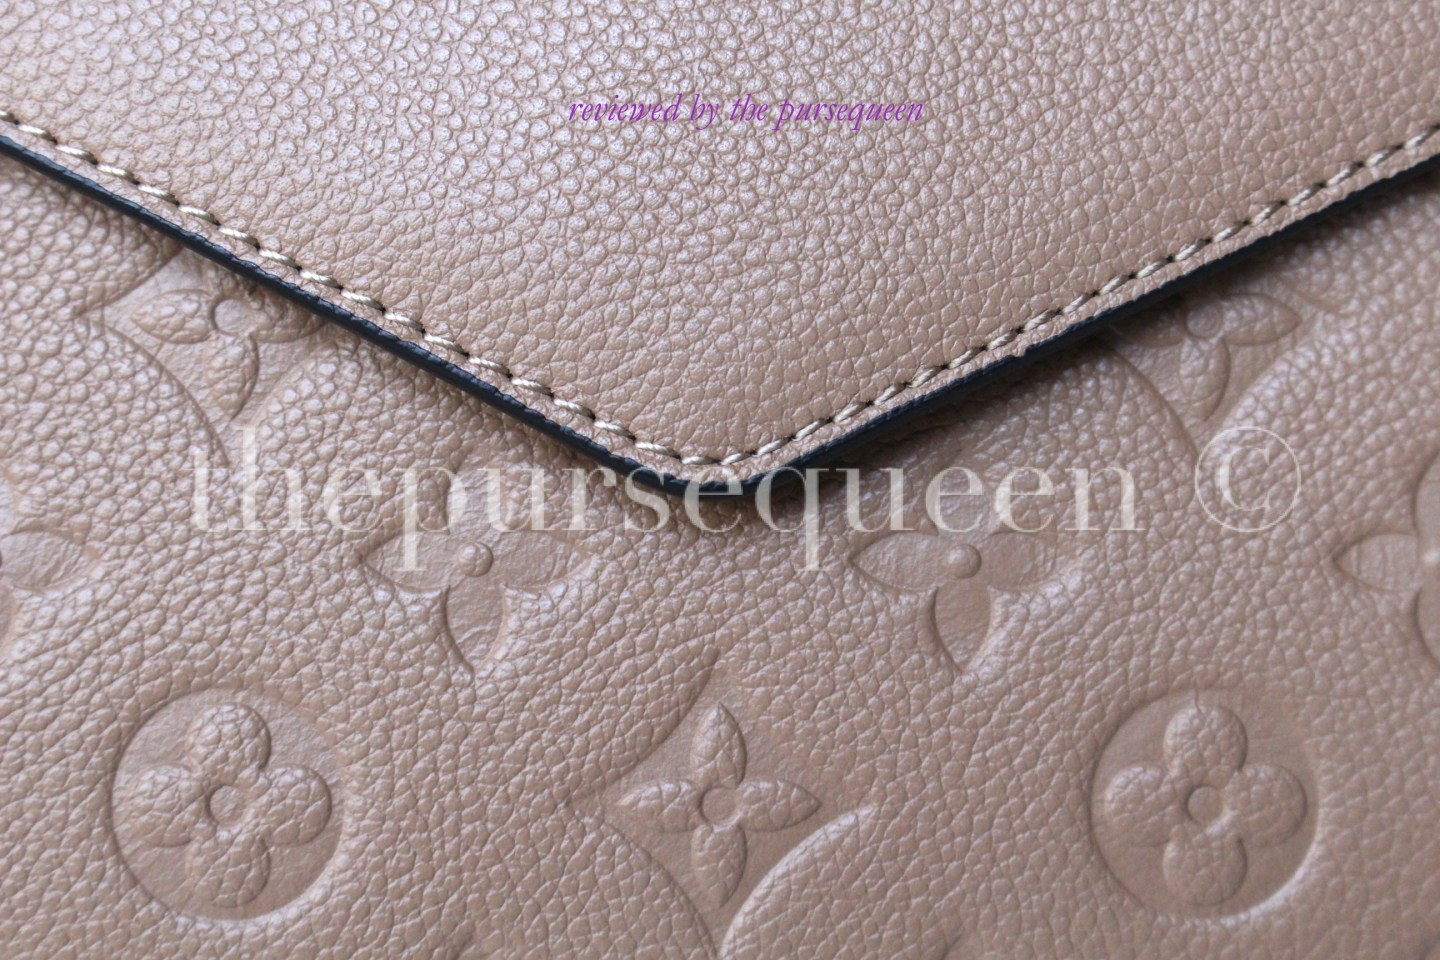 louis vuitton Trocadero empreinte replica authentic review 2